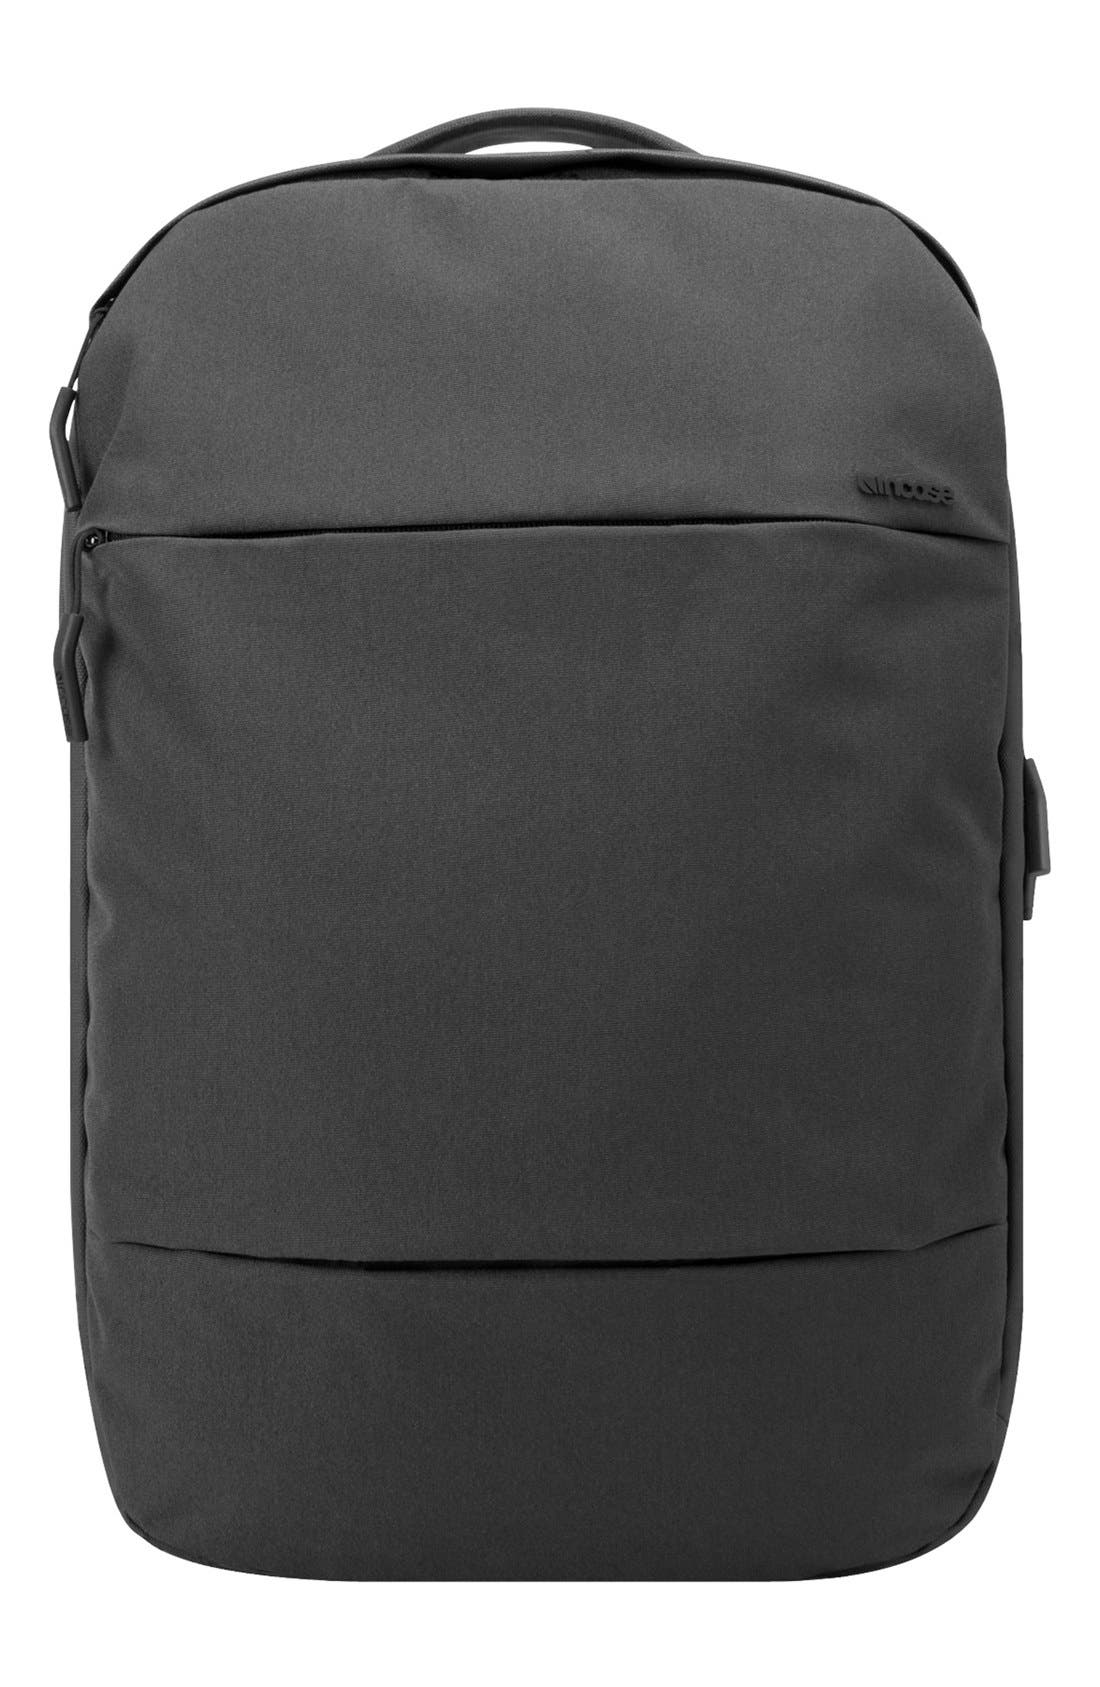 City Compact Backpack,                         Main,                         color, 001